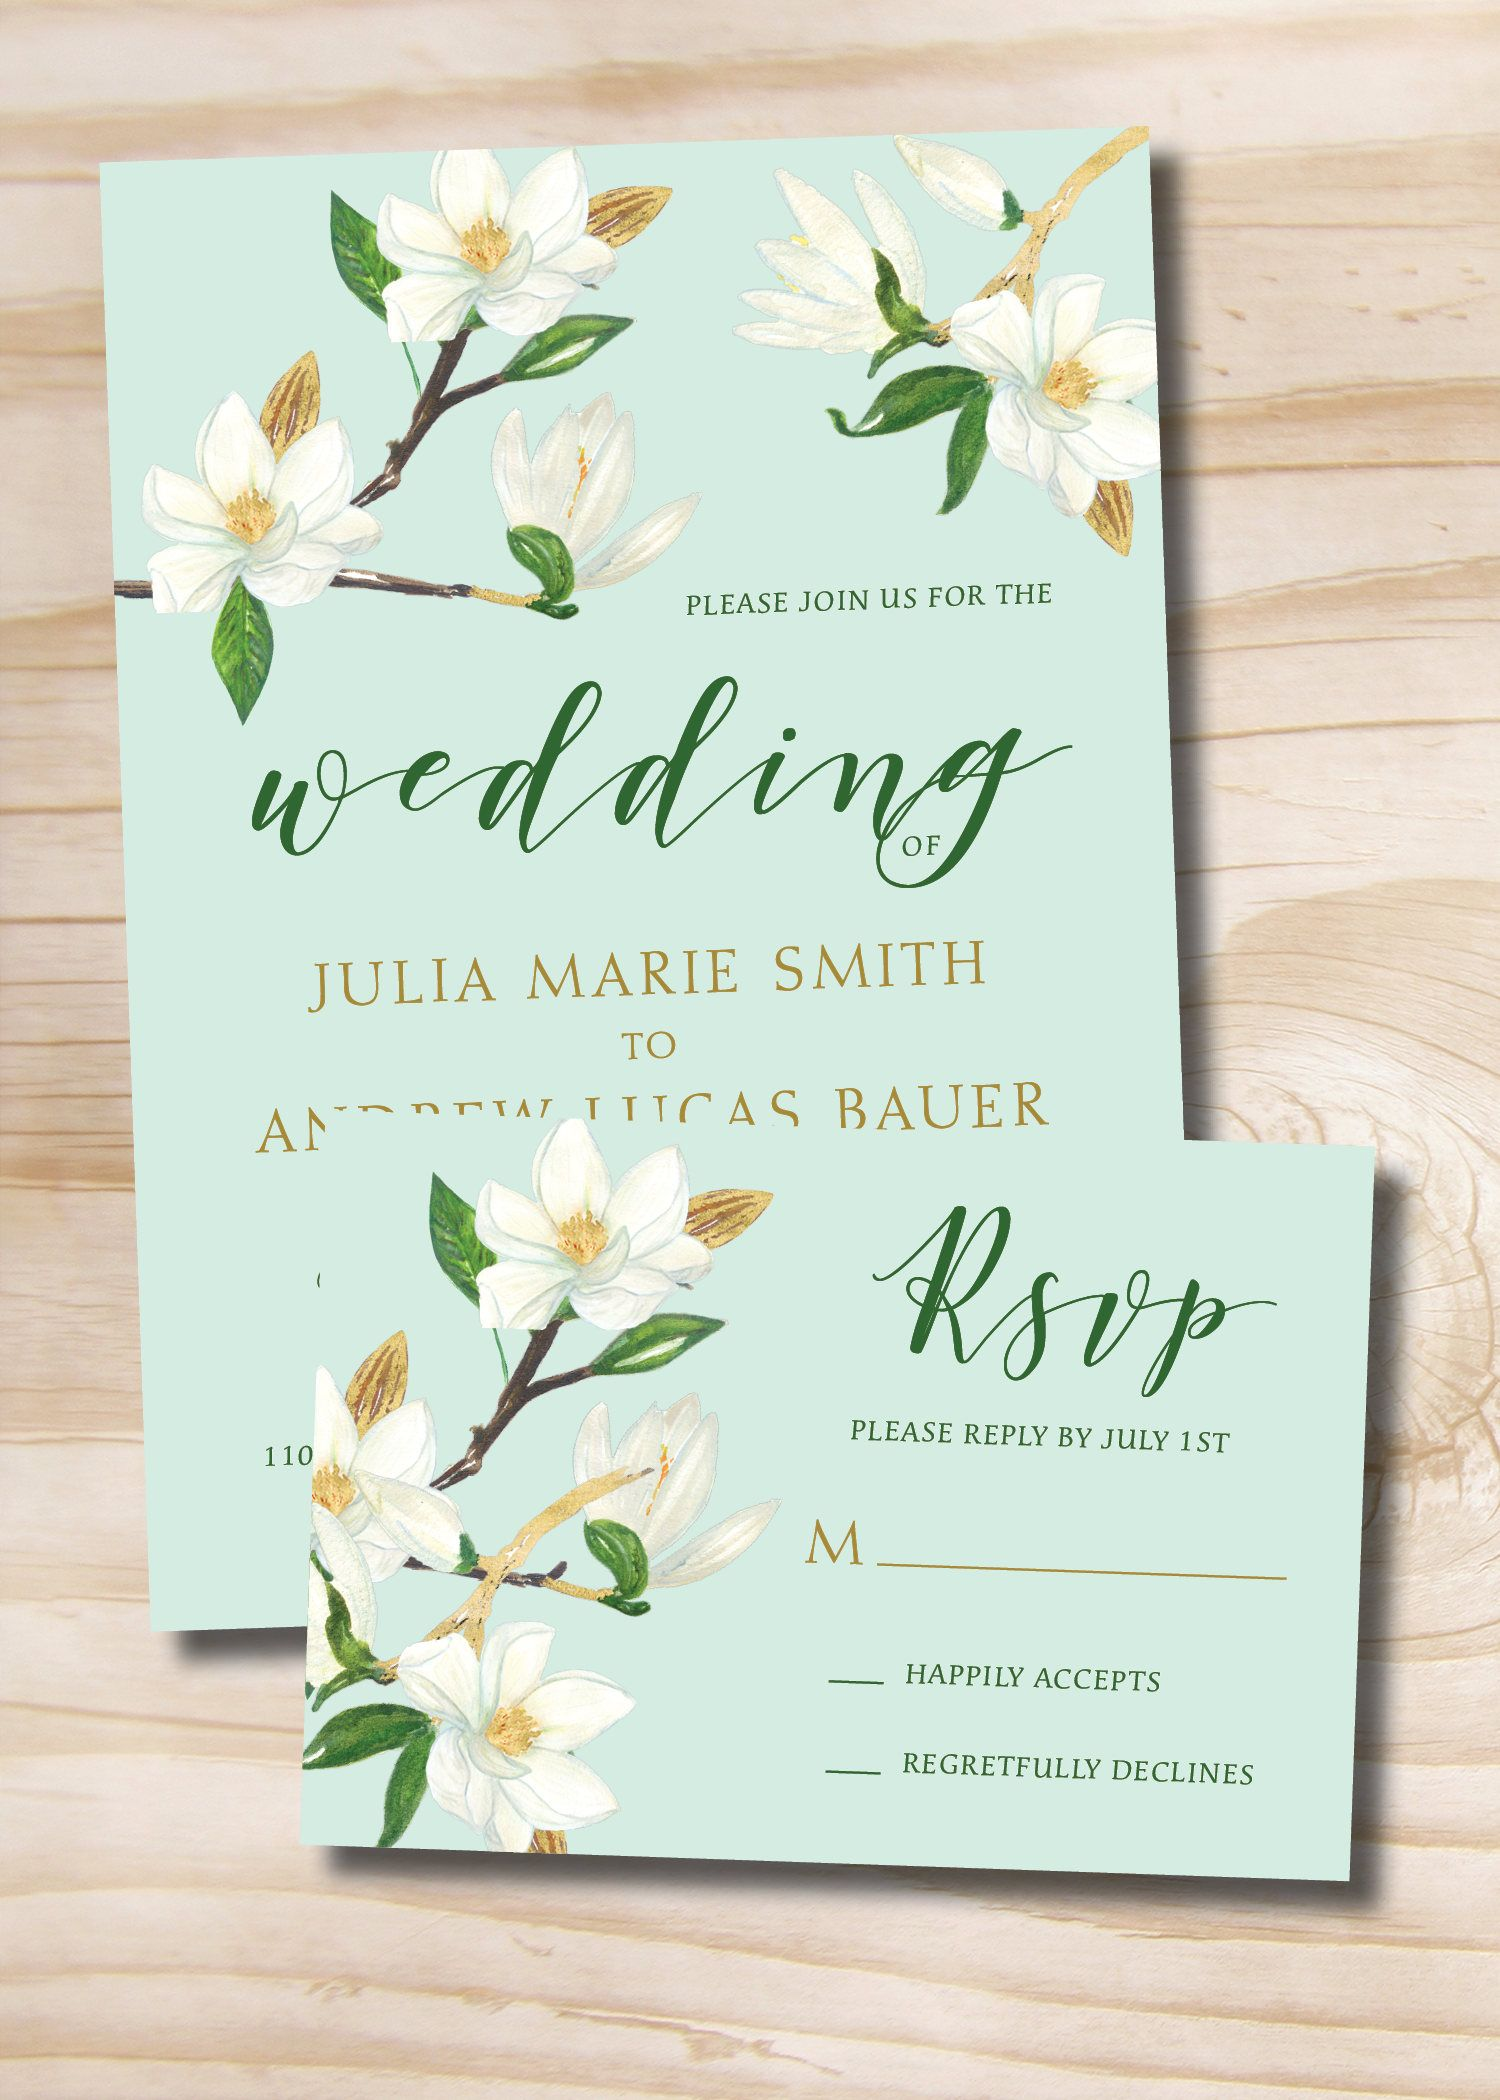 Gold glitter and white floral turquoise wedding invitation and gold glitter and white floral turquoise wedding invitation and response card invitation suite stopboris Choice Image